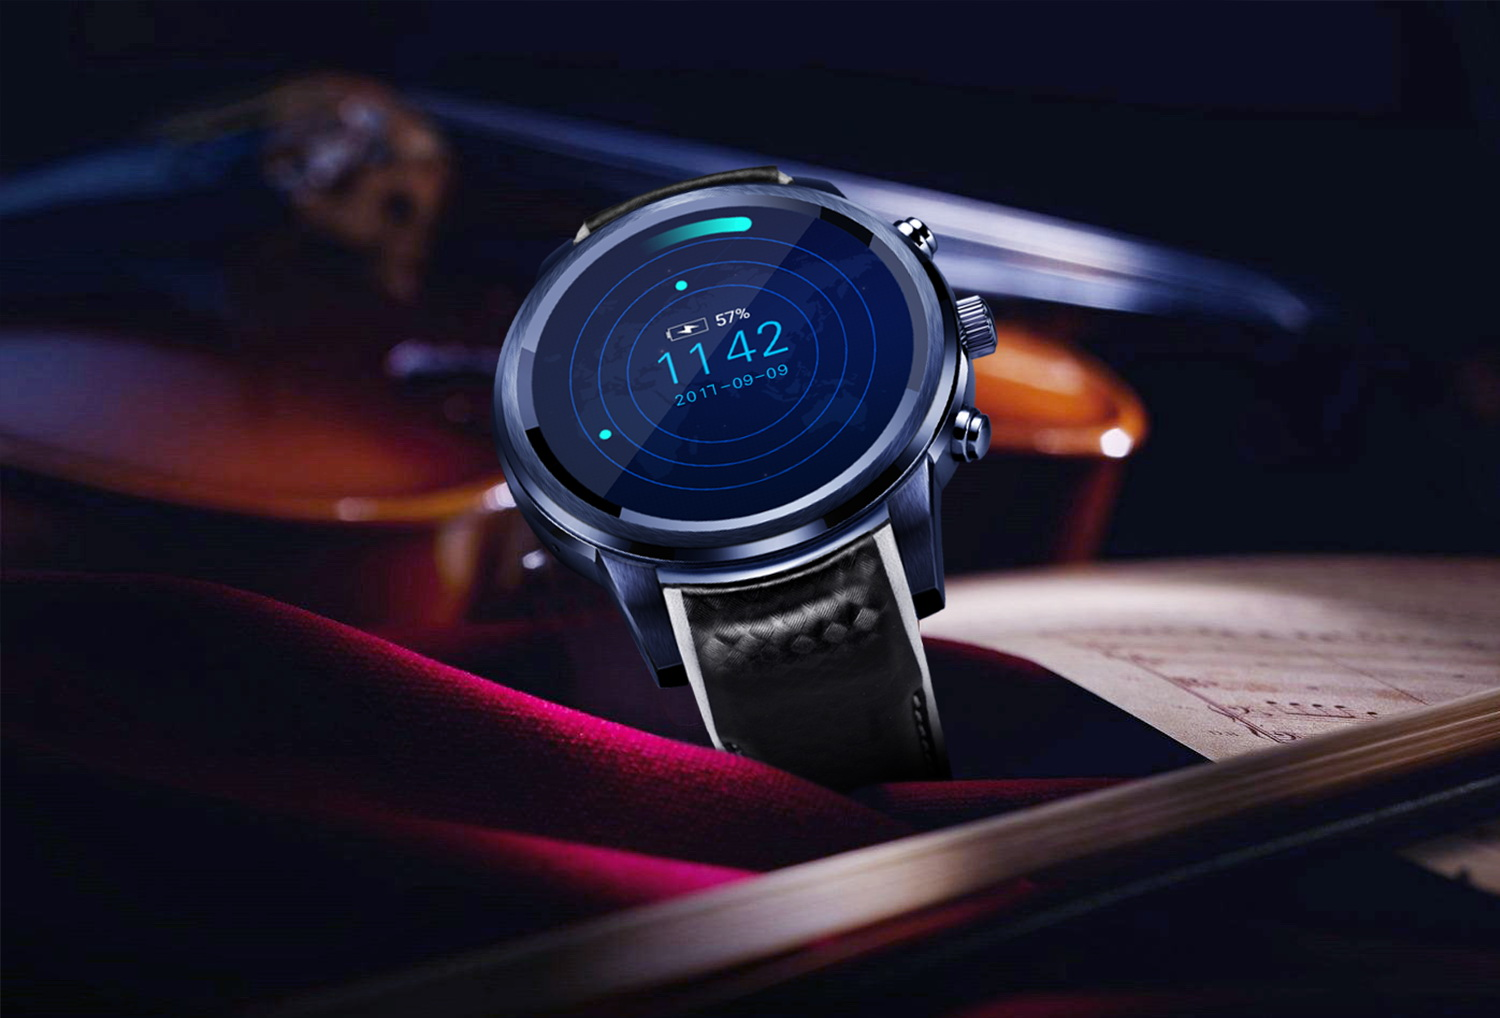 images/wholesale-electronics-2019/LEMFO-LEM5-PRO-Watch-Phone-1-IMEI-3G-WiFi-Music-Pedometer-Heart-Rate-Android-OS-plusbuyer_98.jpg